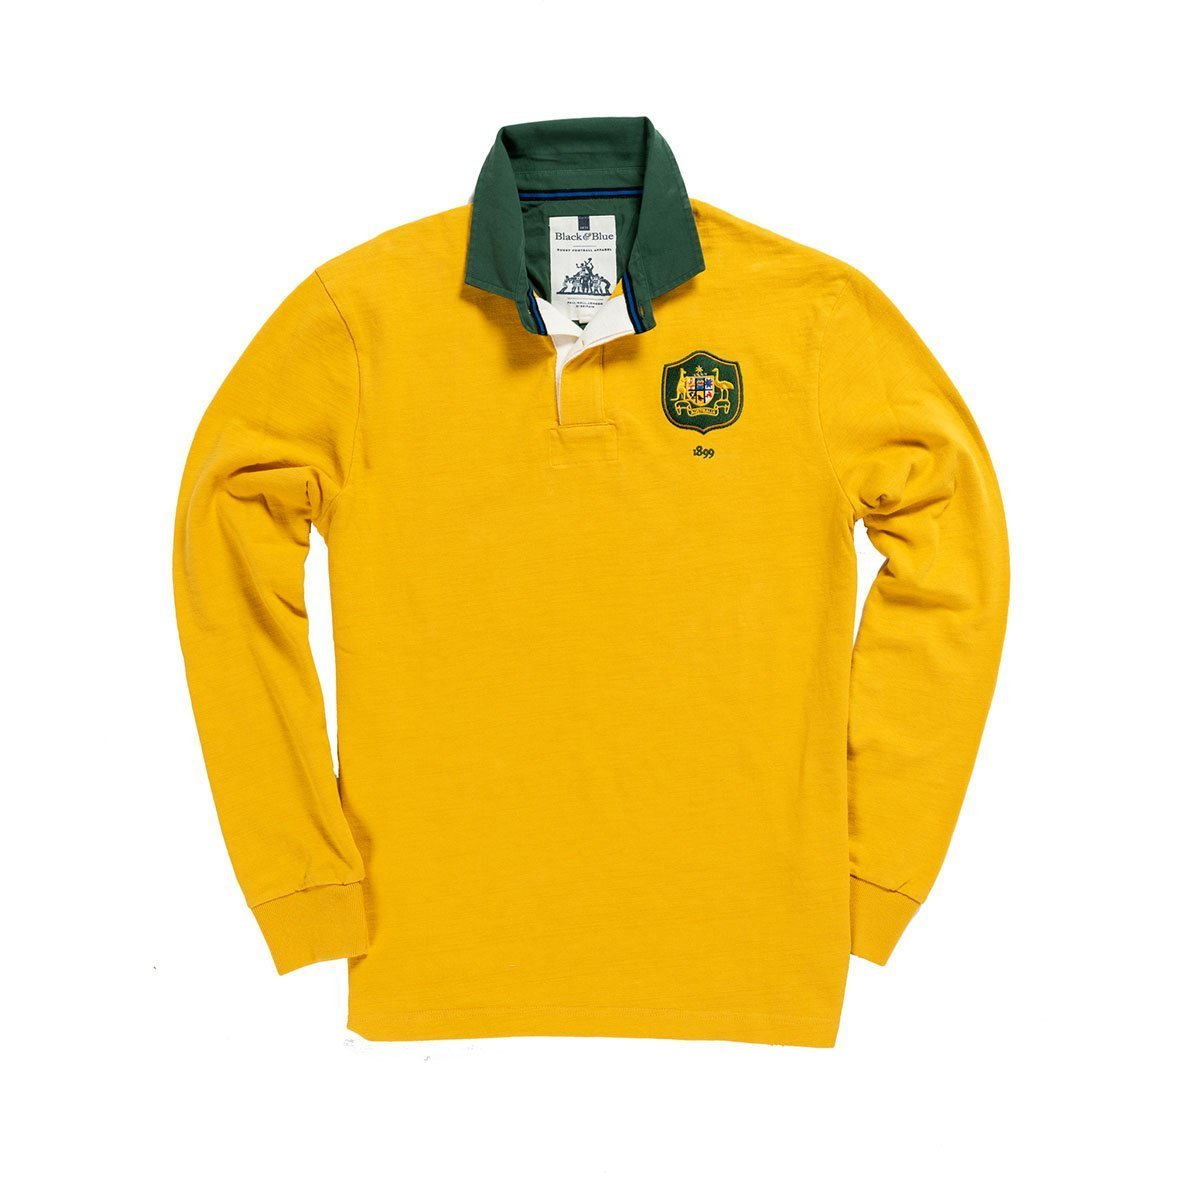 1IN/AUXS, Black & Blue 1871, Australia 1899 Rugby Shirt, Yellow, Vintage, Classic Rugby Shirt